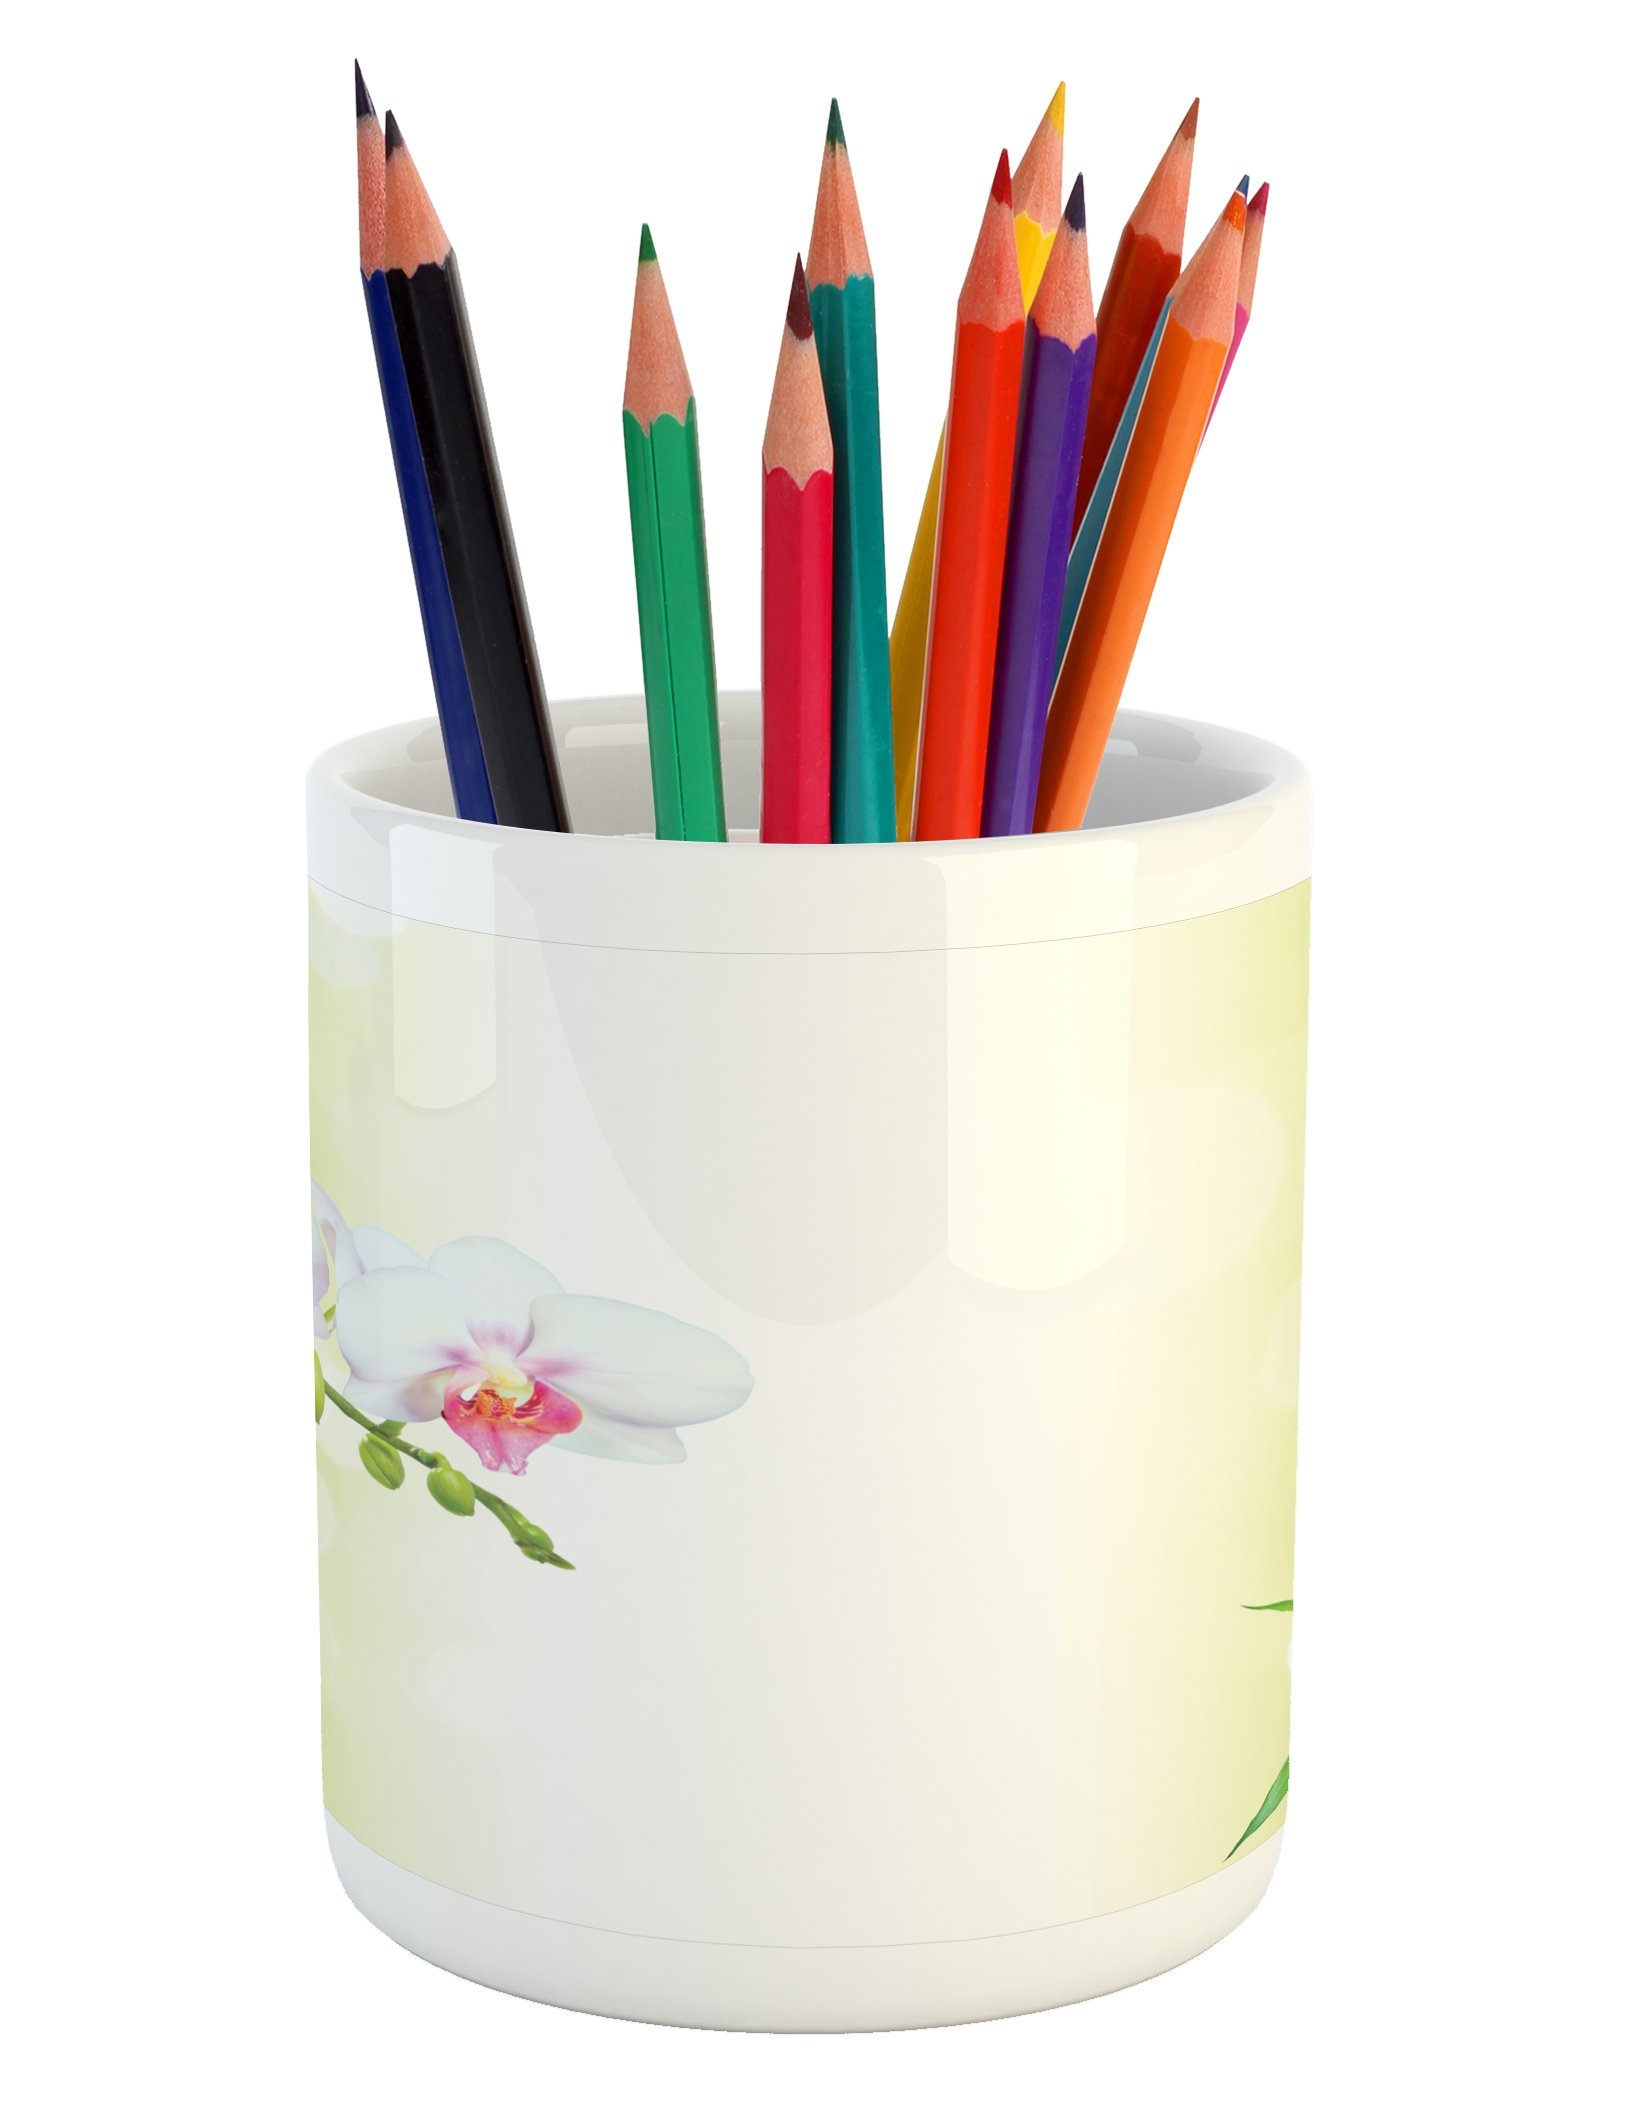 Ambesonne Spa Pencil Pen Holder, Orchid Flowers with Bamboo Branches in Vibrant Colors Spiritual Practice Theme, Printed Ceramic Pencil Pen Holder for Desk Office Accessory, White and Green